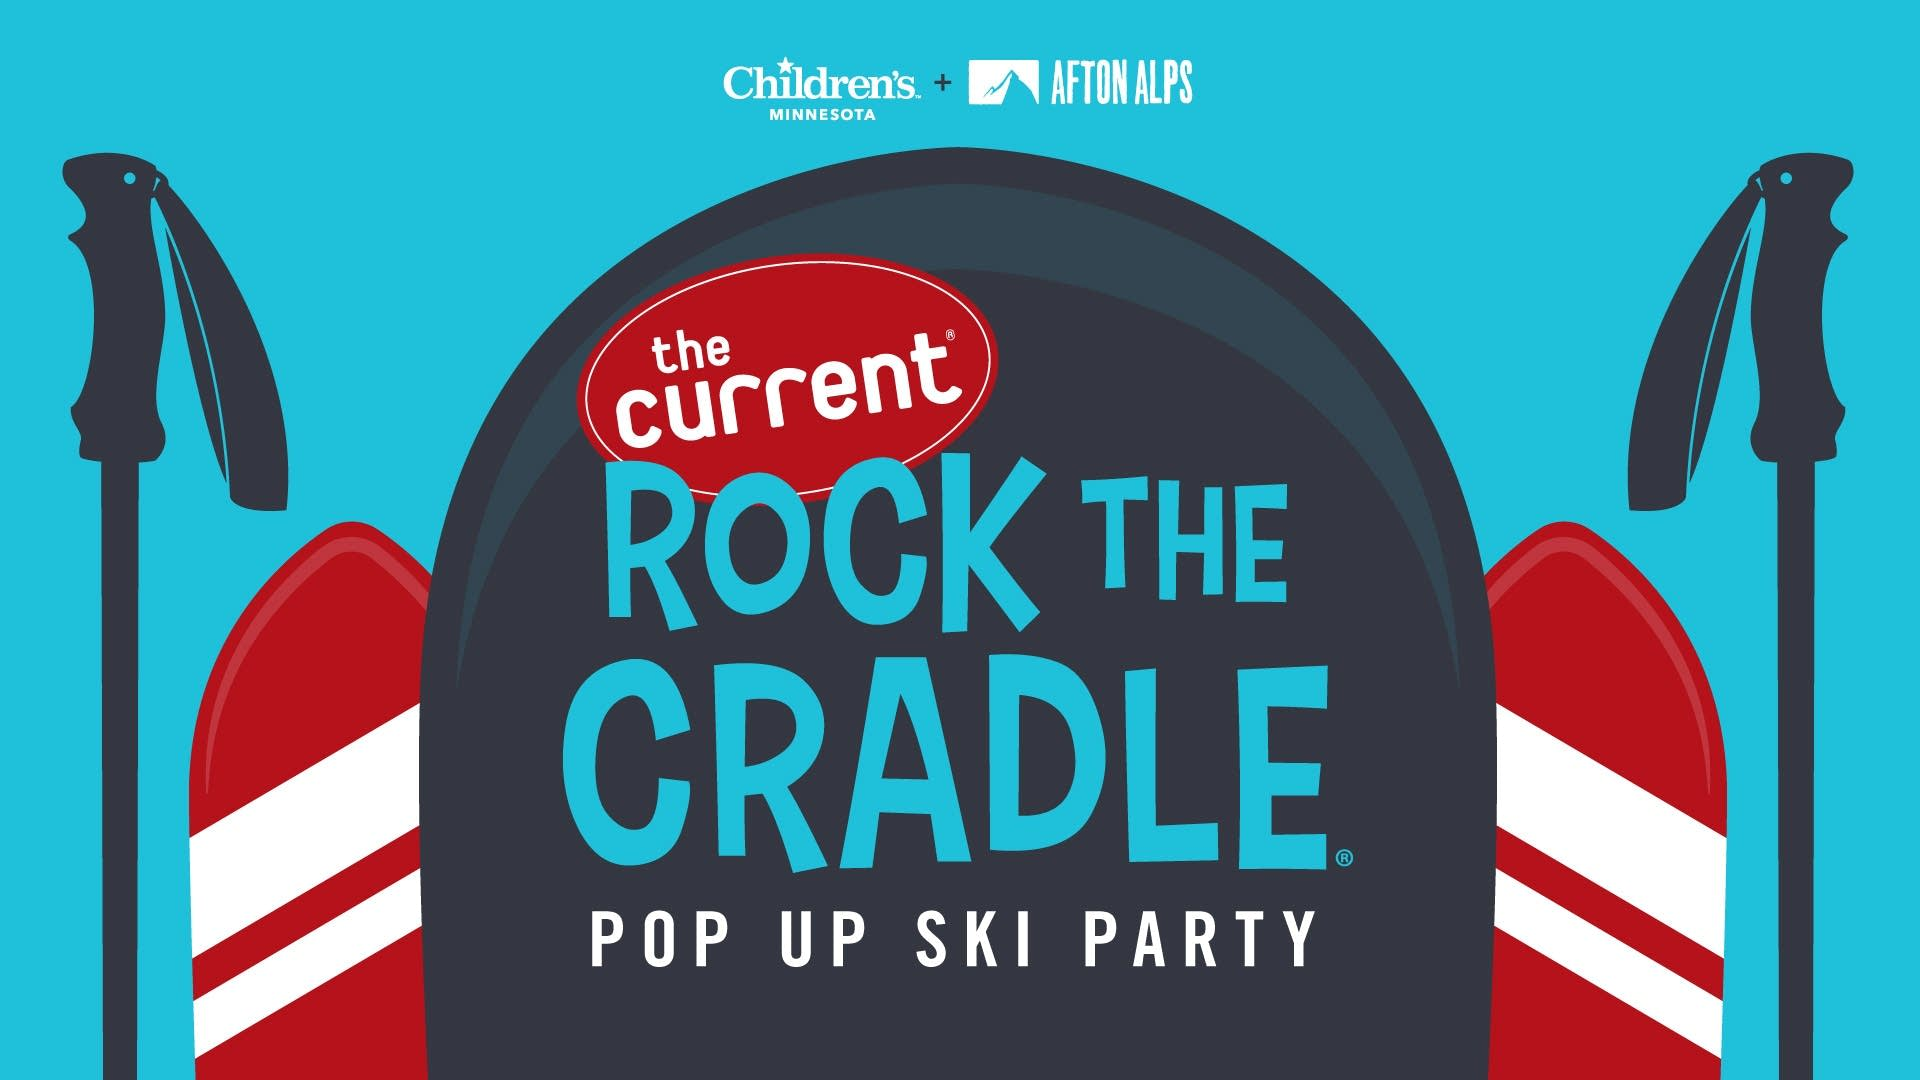 Rock the Cradle Pop Up Ski Party 2020 with extra logos